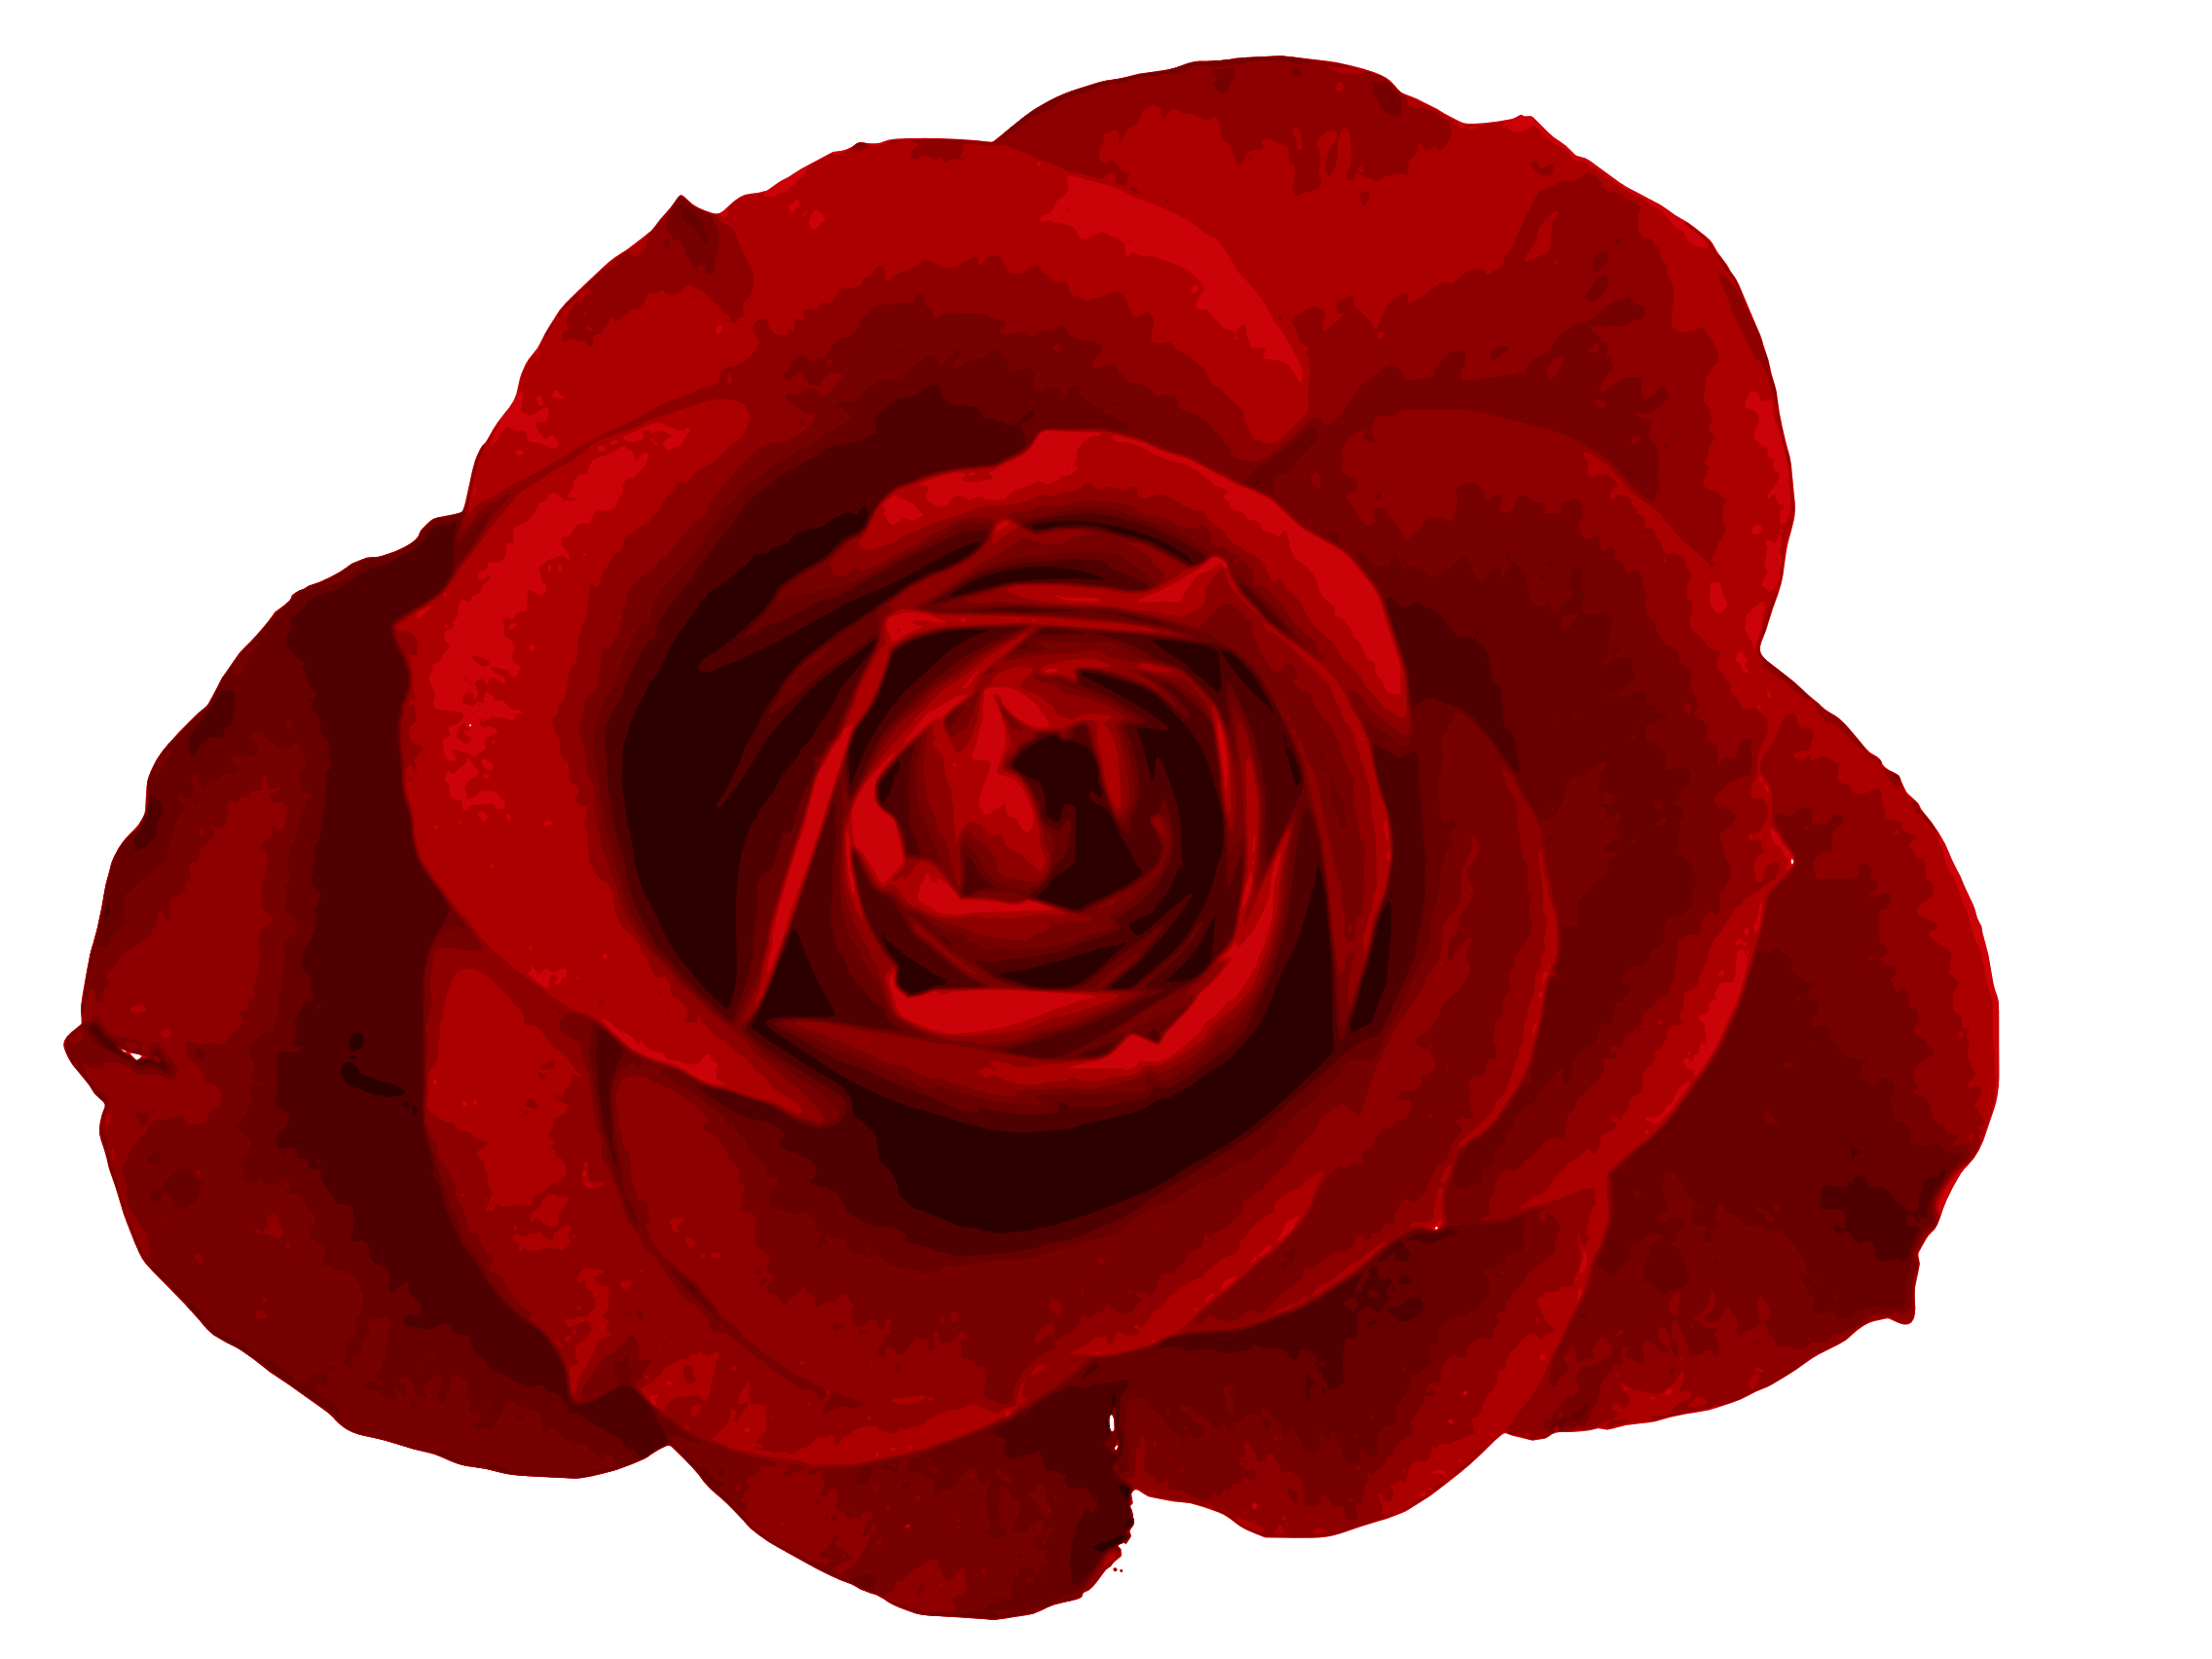 Red Rose PNG Image Transparent | OnlyGFX.com for Transparent Png Images Roses  303mzq